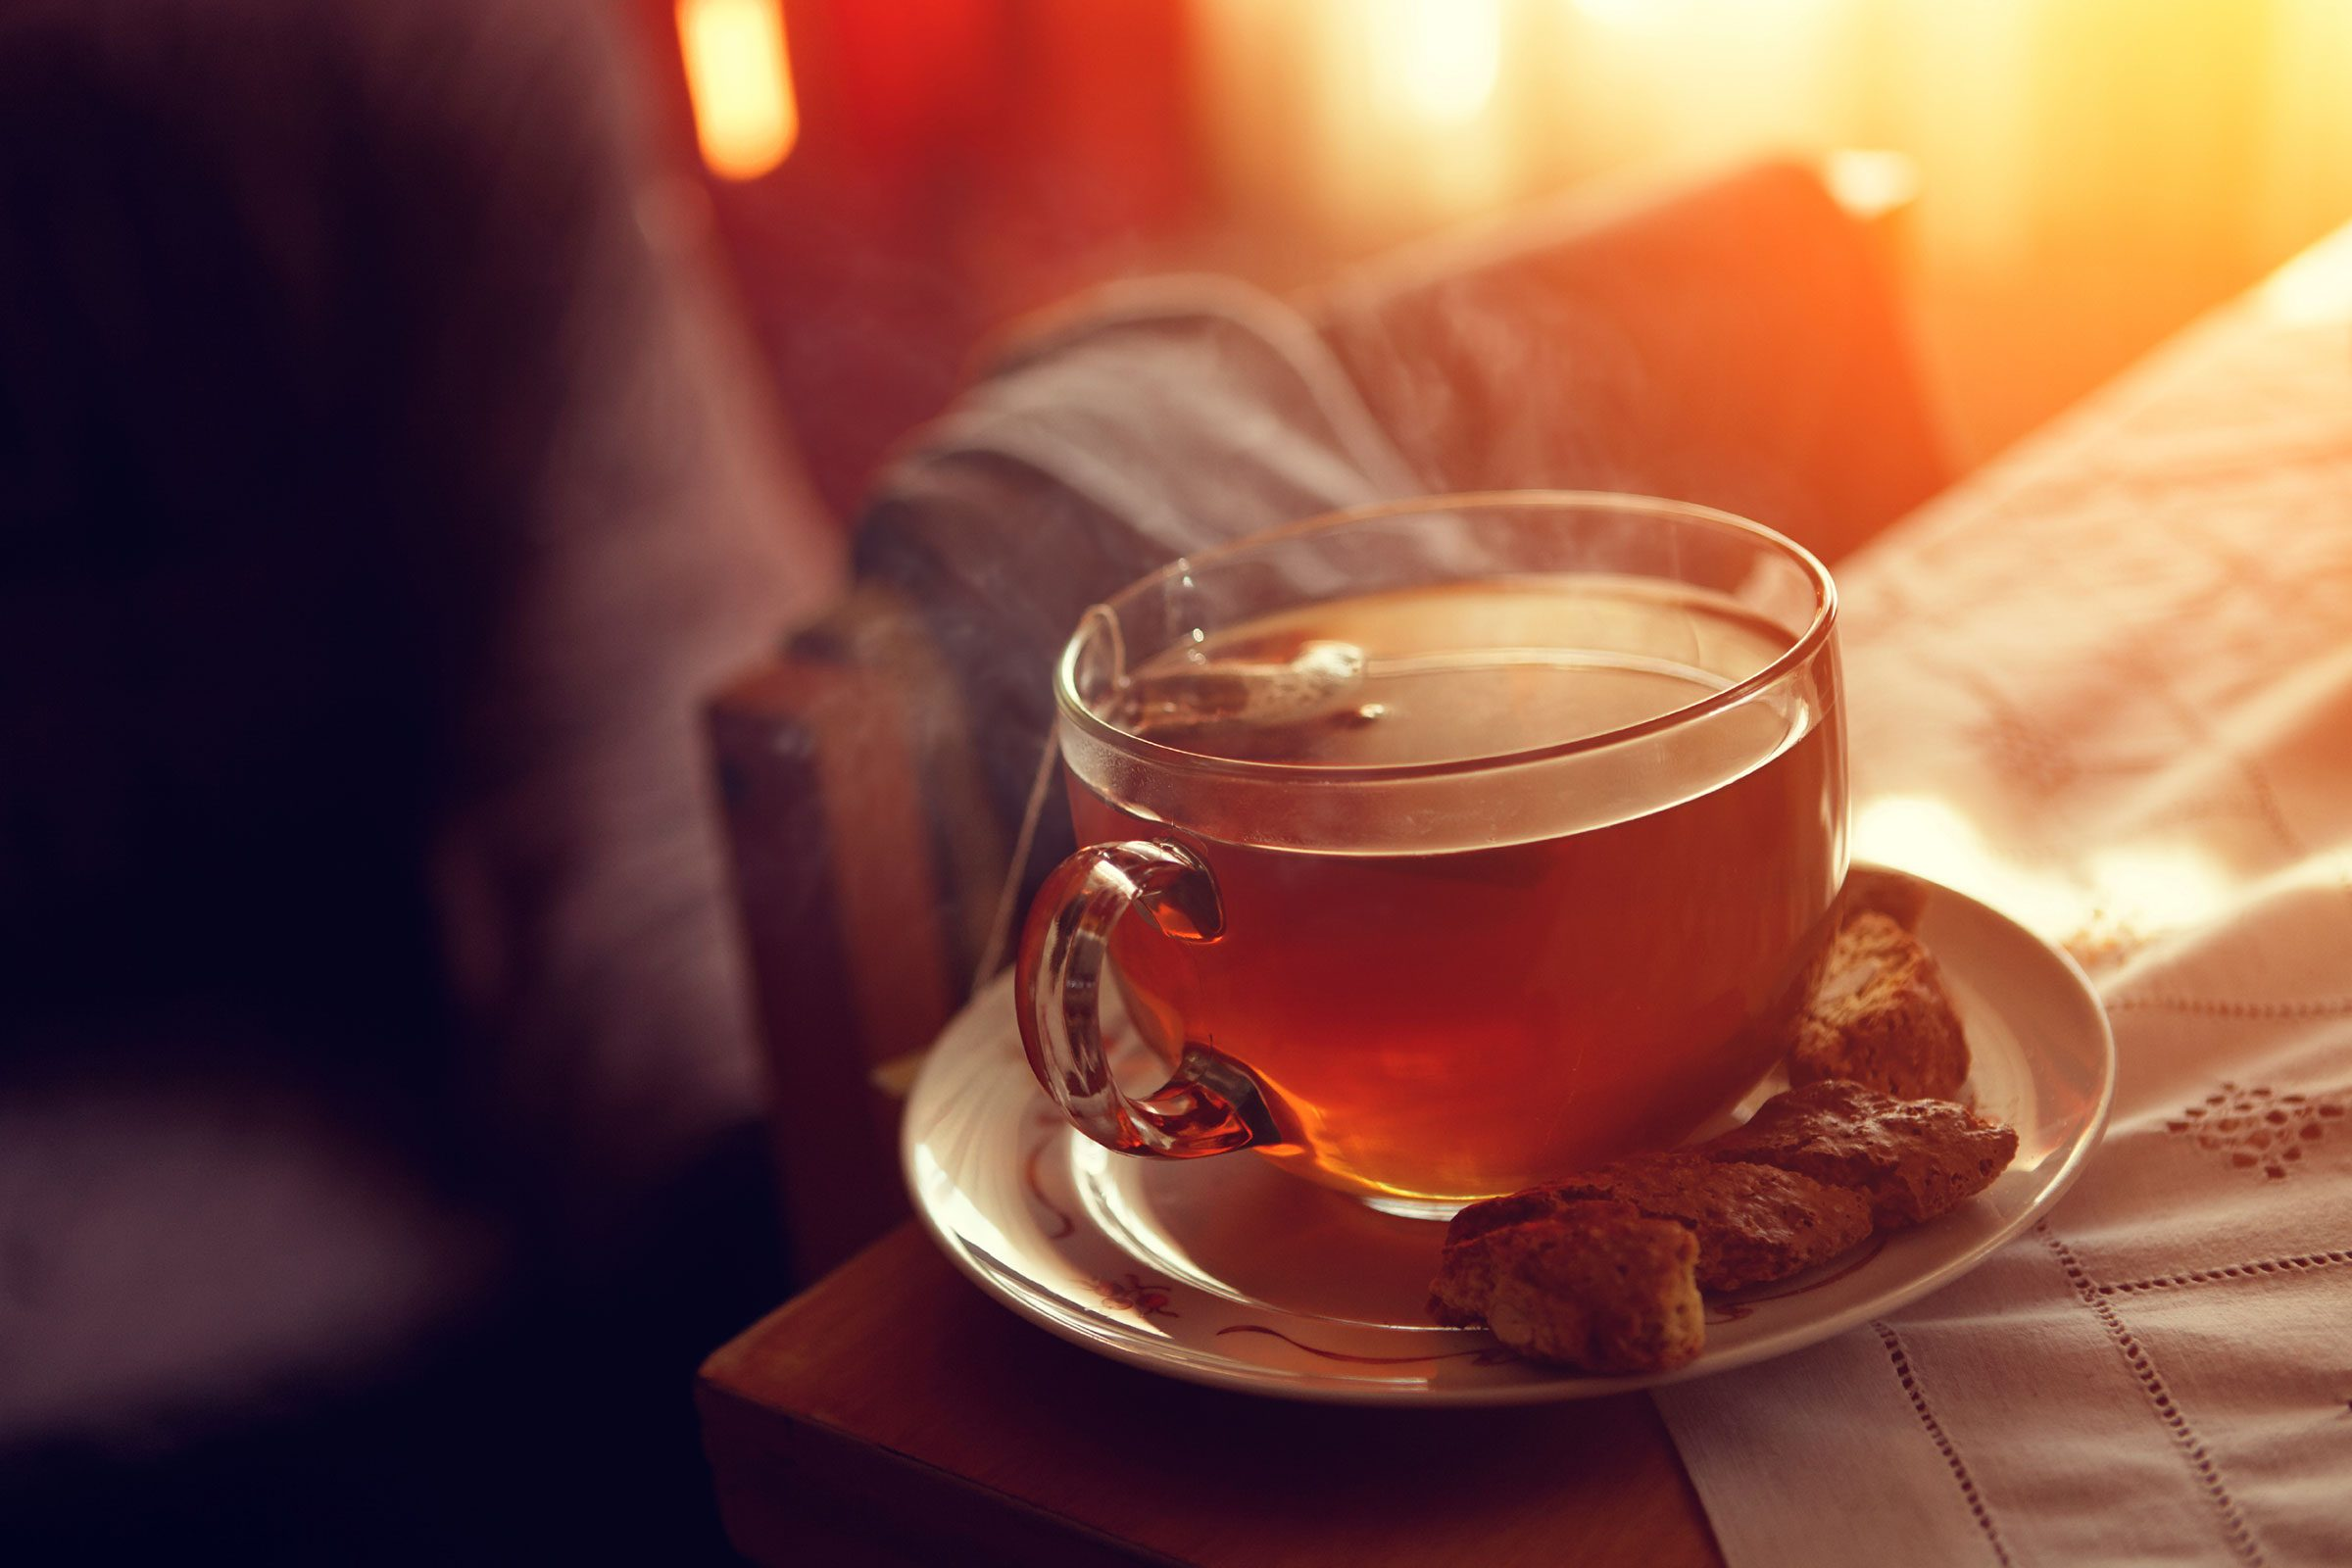 Toothache remedy: Soothe with tea